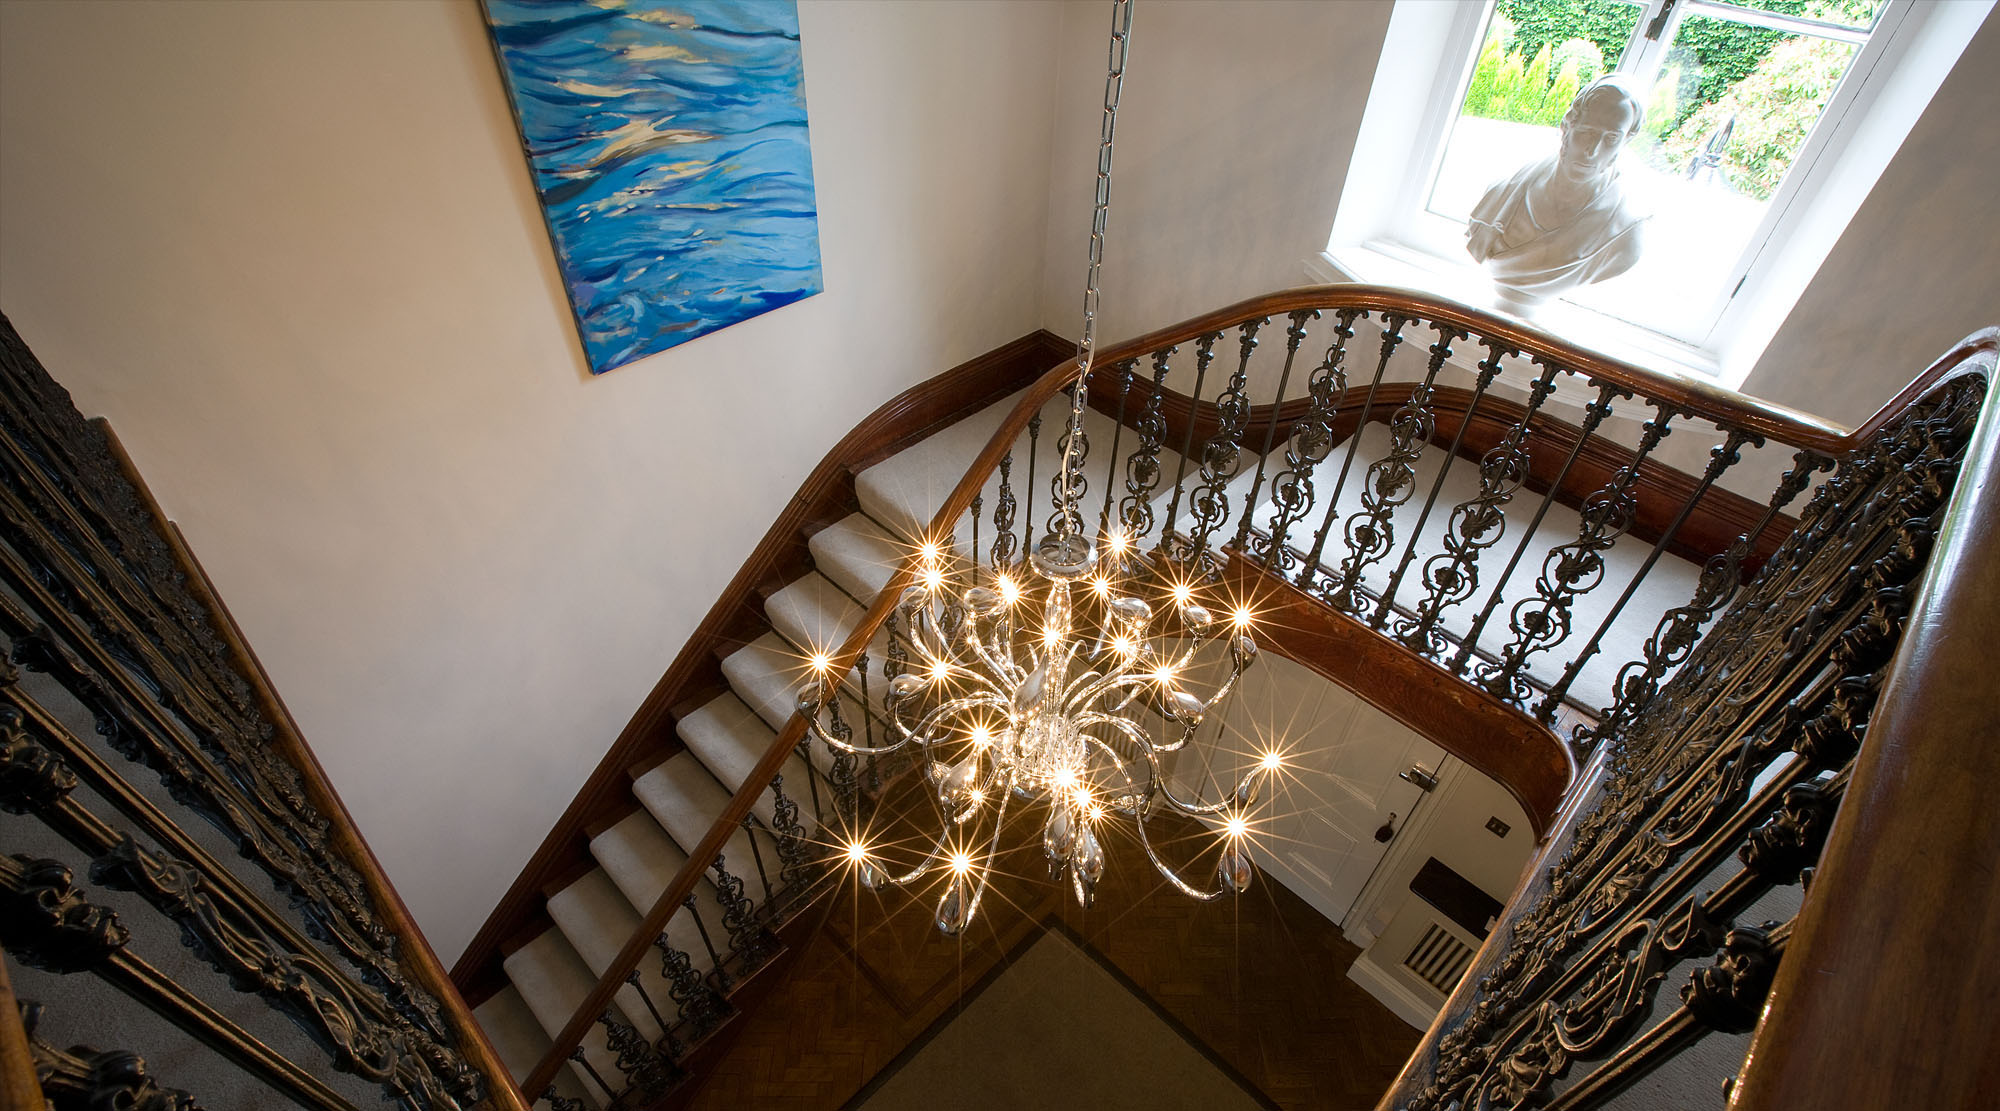 Tradional dark wood returning staircase with large pendant contemporary light fitting.